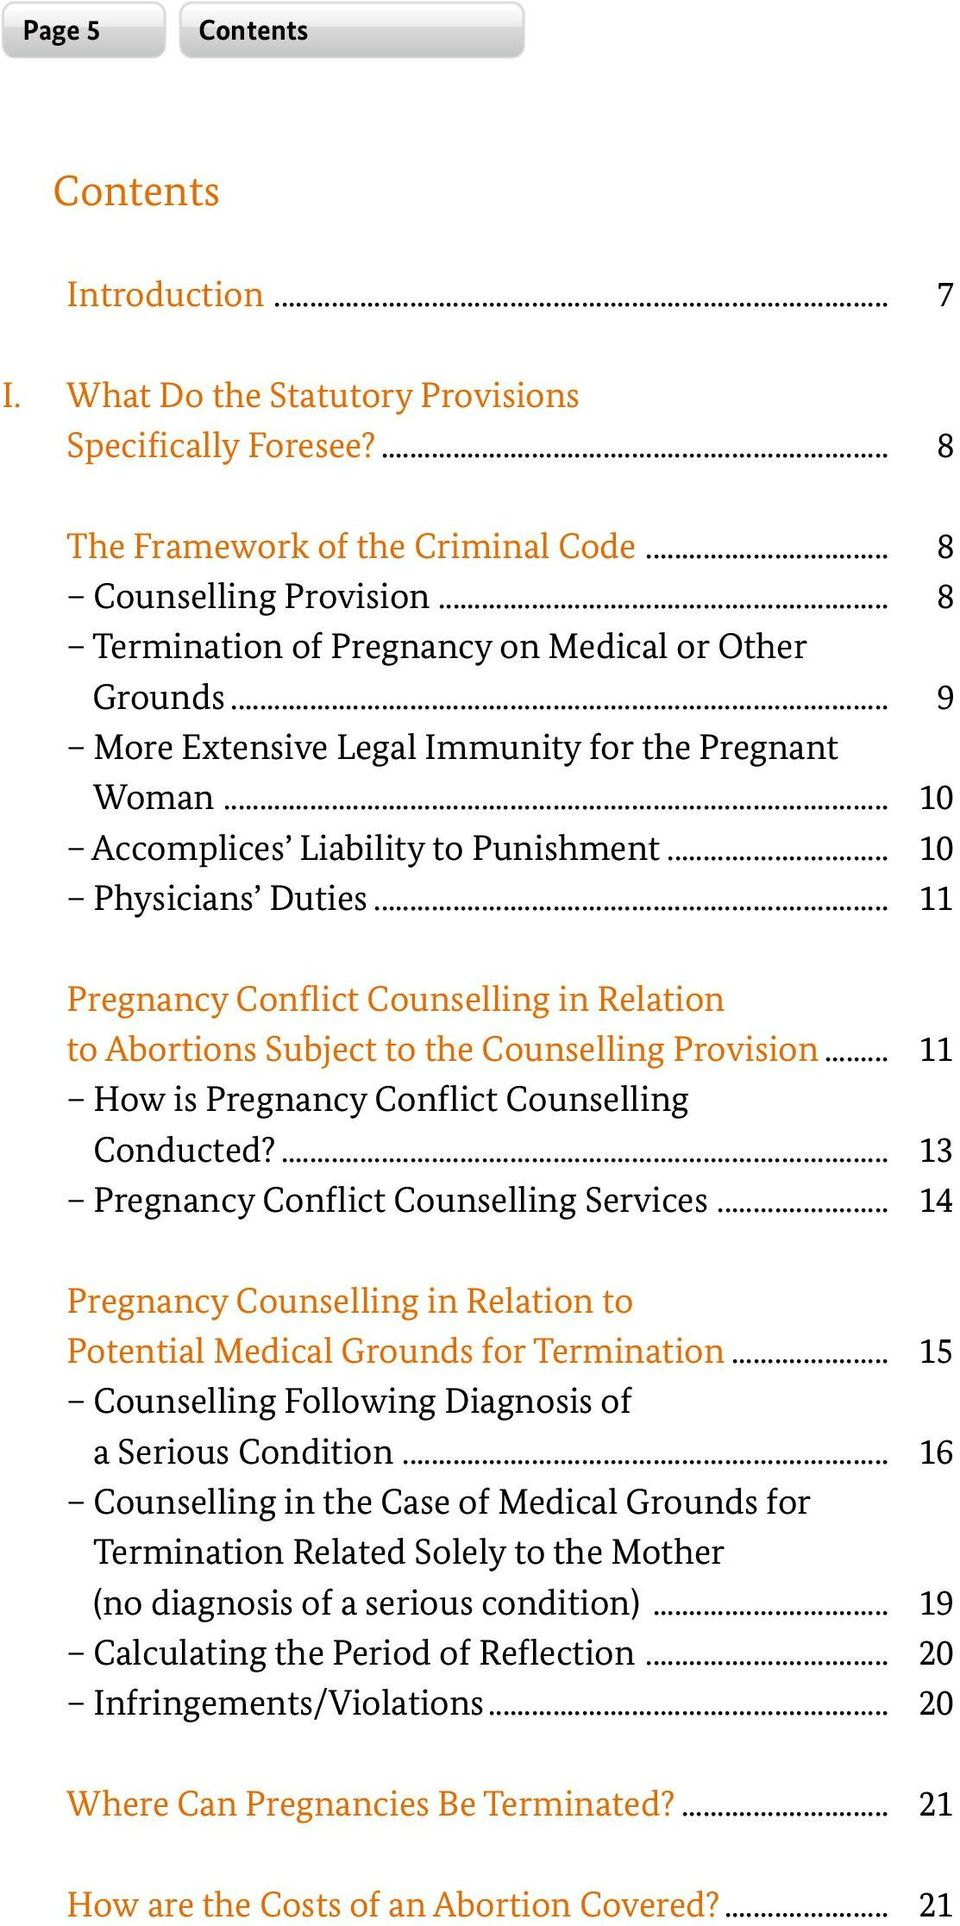 .. 11 Pregnancy Conflict Counselling in Relation to Abortions Subject to the Counselling Provision... 11 How is Pregnancy Conflict Counselling Conducted?... 13 Pregnancy Conflict Counselling Services.